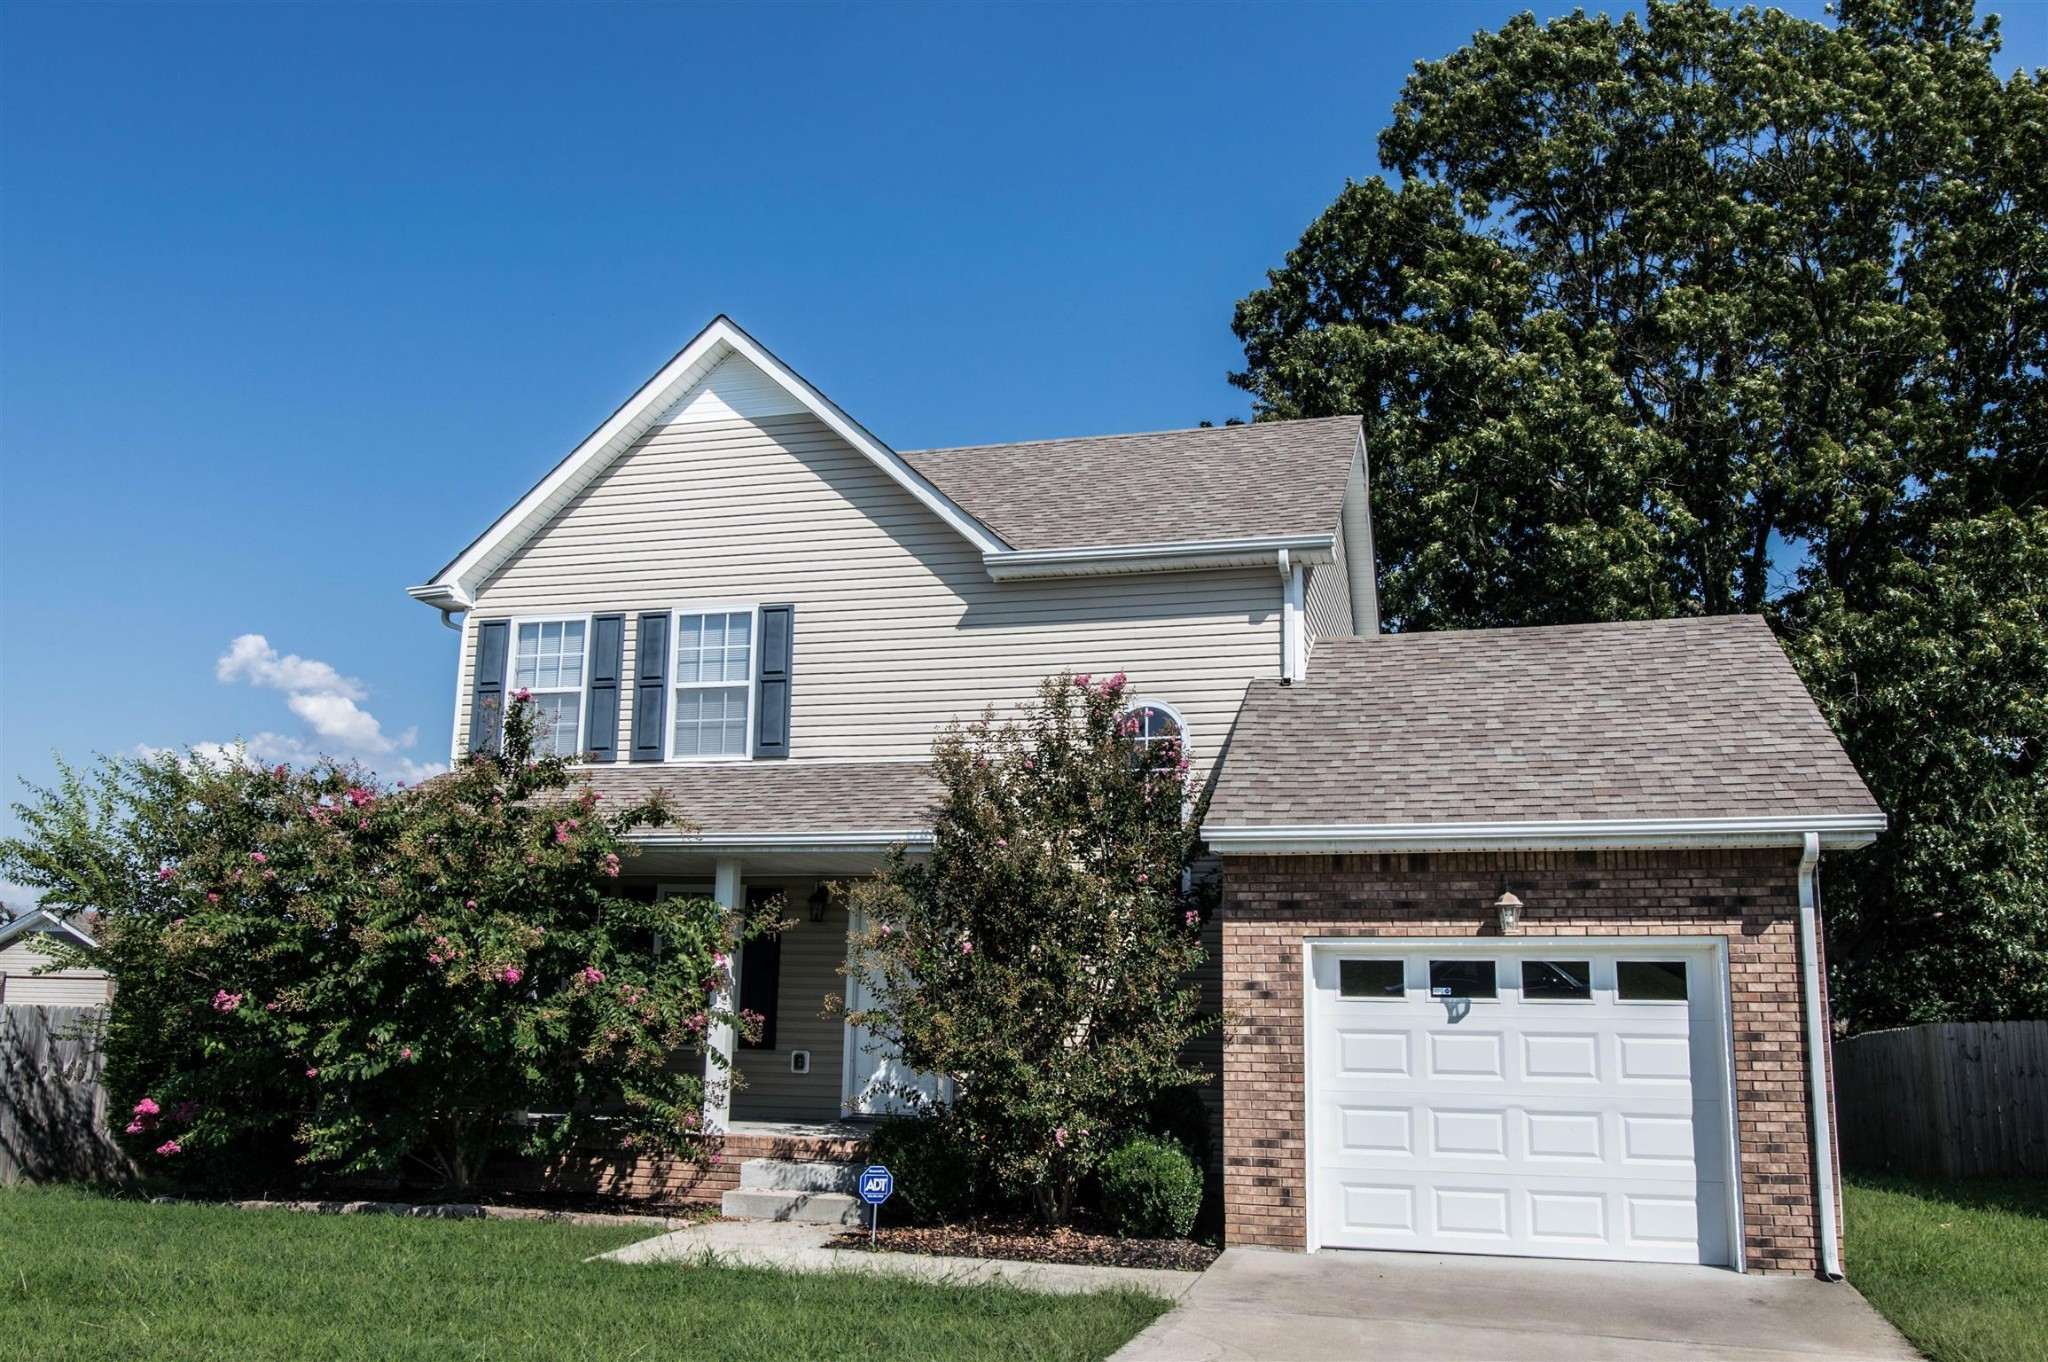 2792 Russet Ridge Dr Property Photo - Clarksville, TN real estate listing